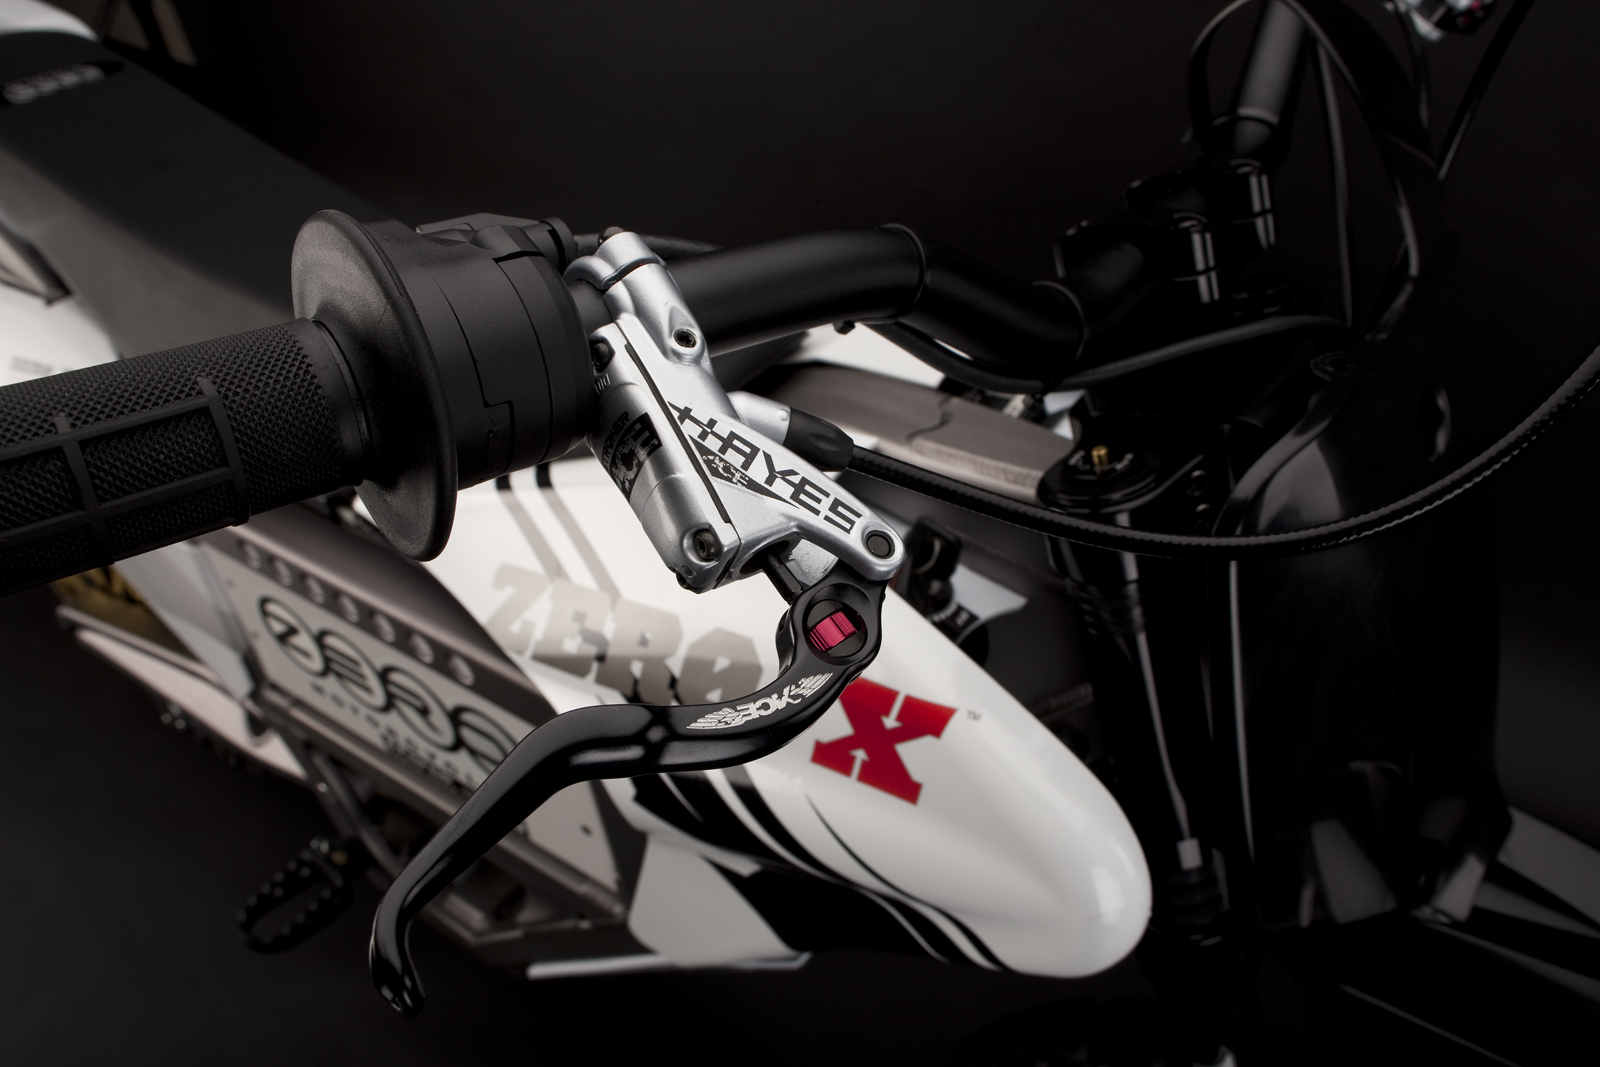 2010 Zero X Electric Motorcycle: Front Brake Hand